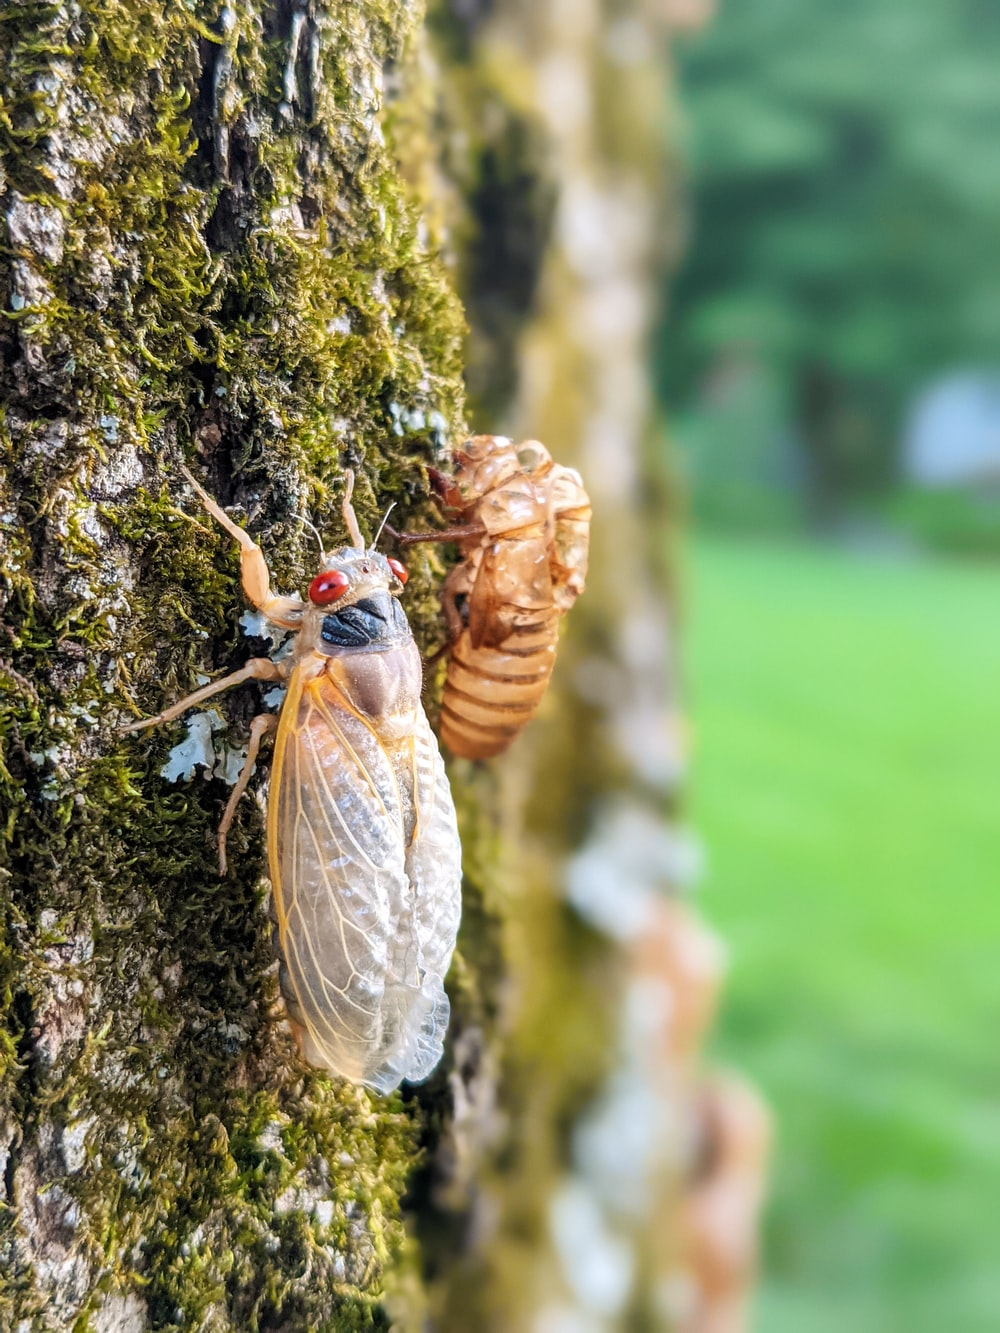 brown and gray moth on brown tree trunk during daytime